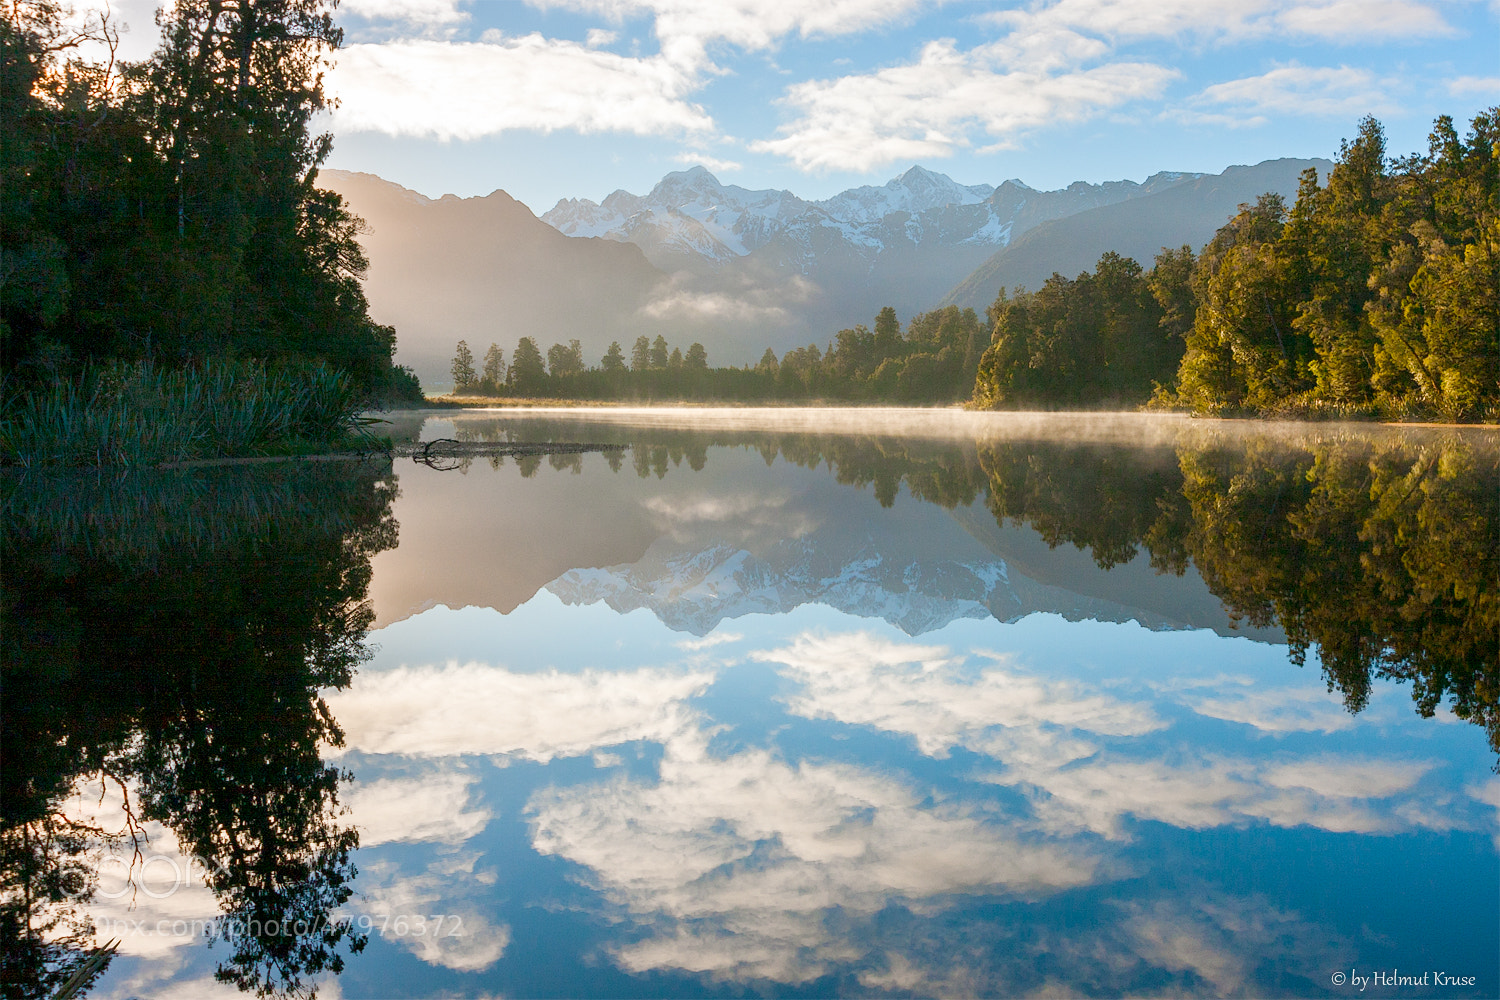 Photograph Lake Mathewson Southern Alps New Zealand by Helmut Kruse on 500px